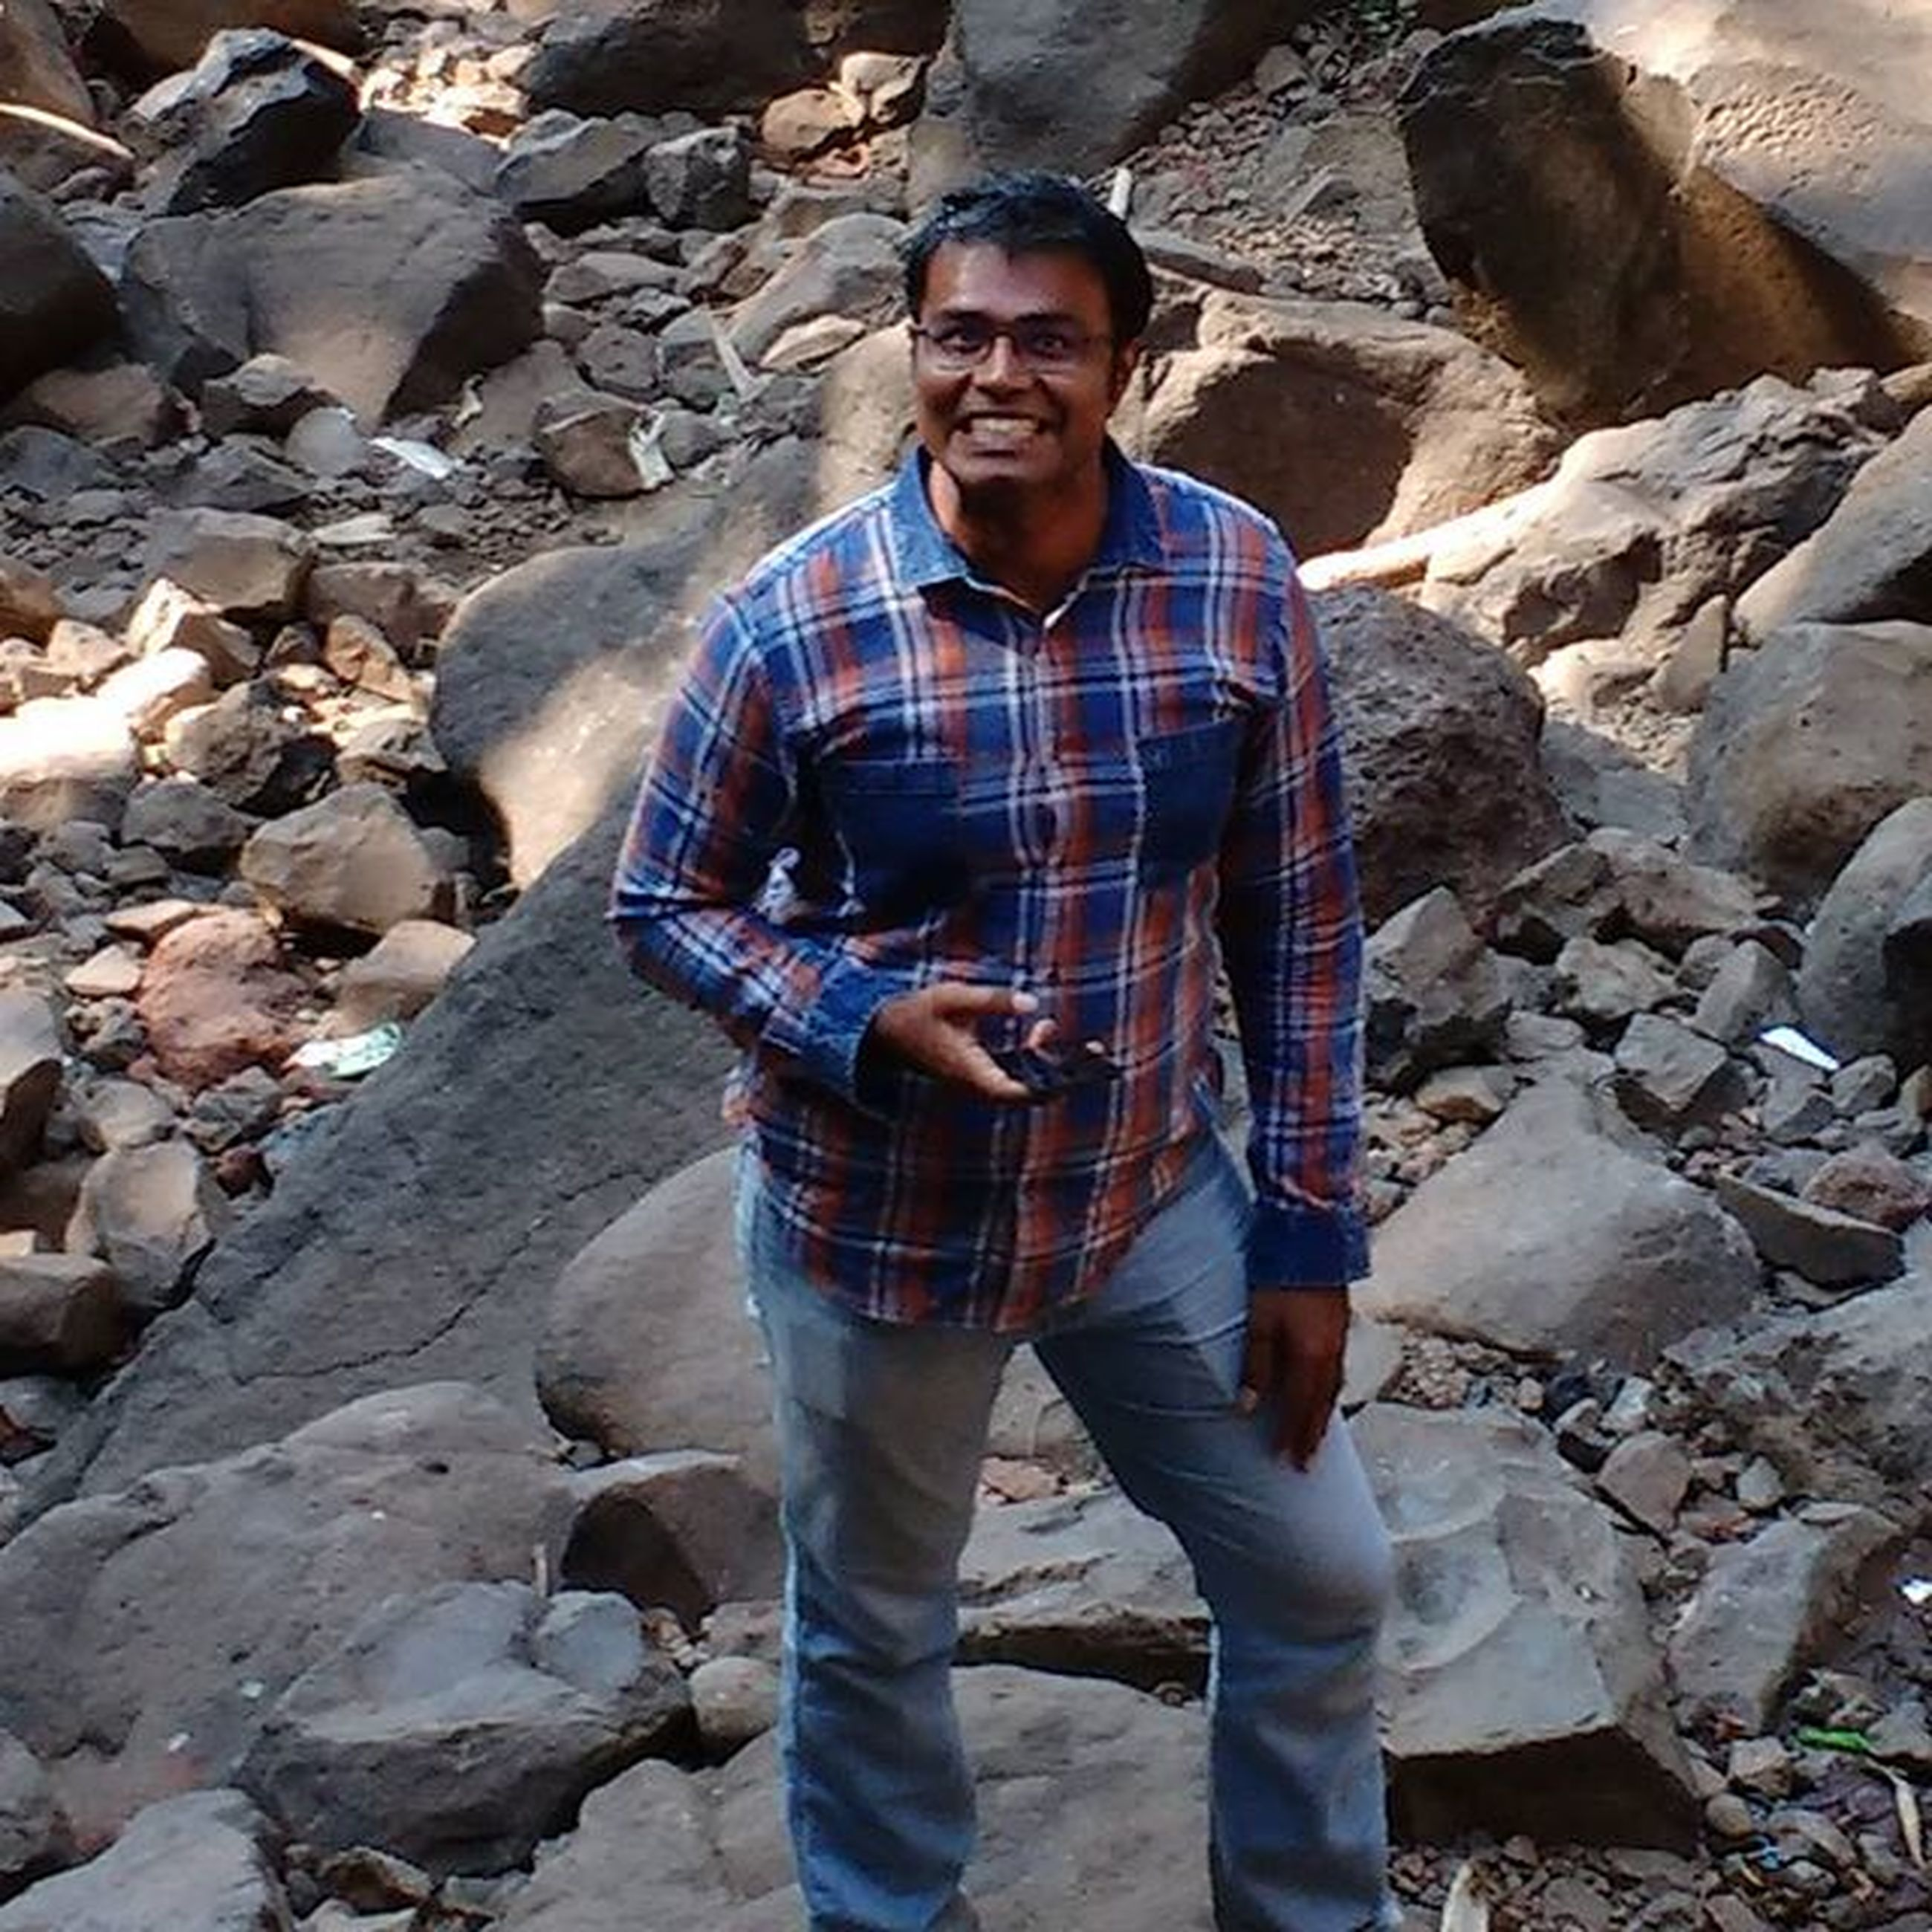 lifestyles, casual clothing, standing, leisure activity, rock - object, person, portrait, looking at camera, full length, front view, young adult, outdoors, day, stone - object, three quarter length, nature, high angle view, rock